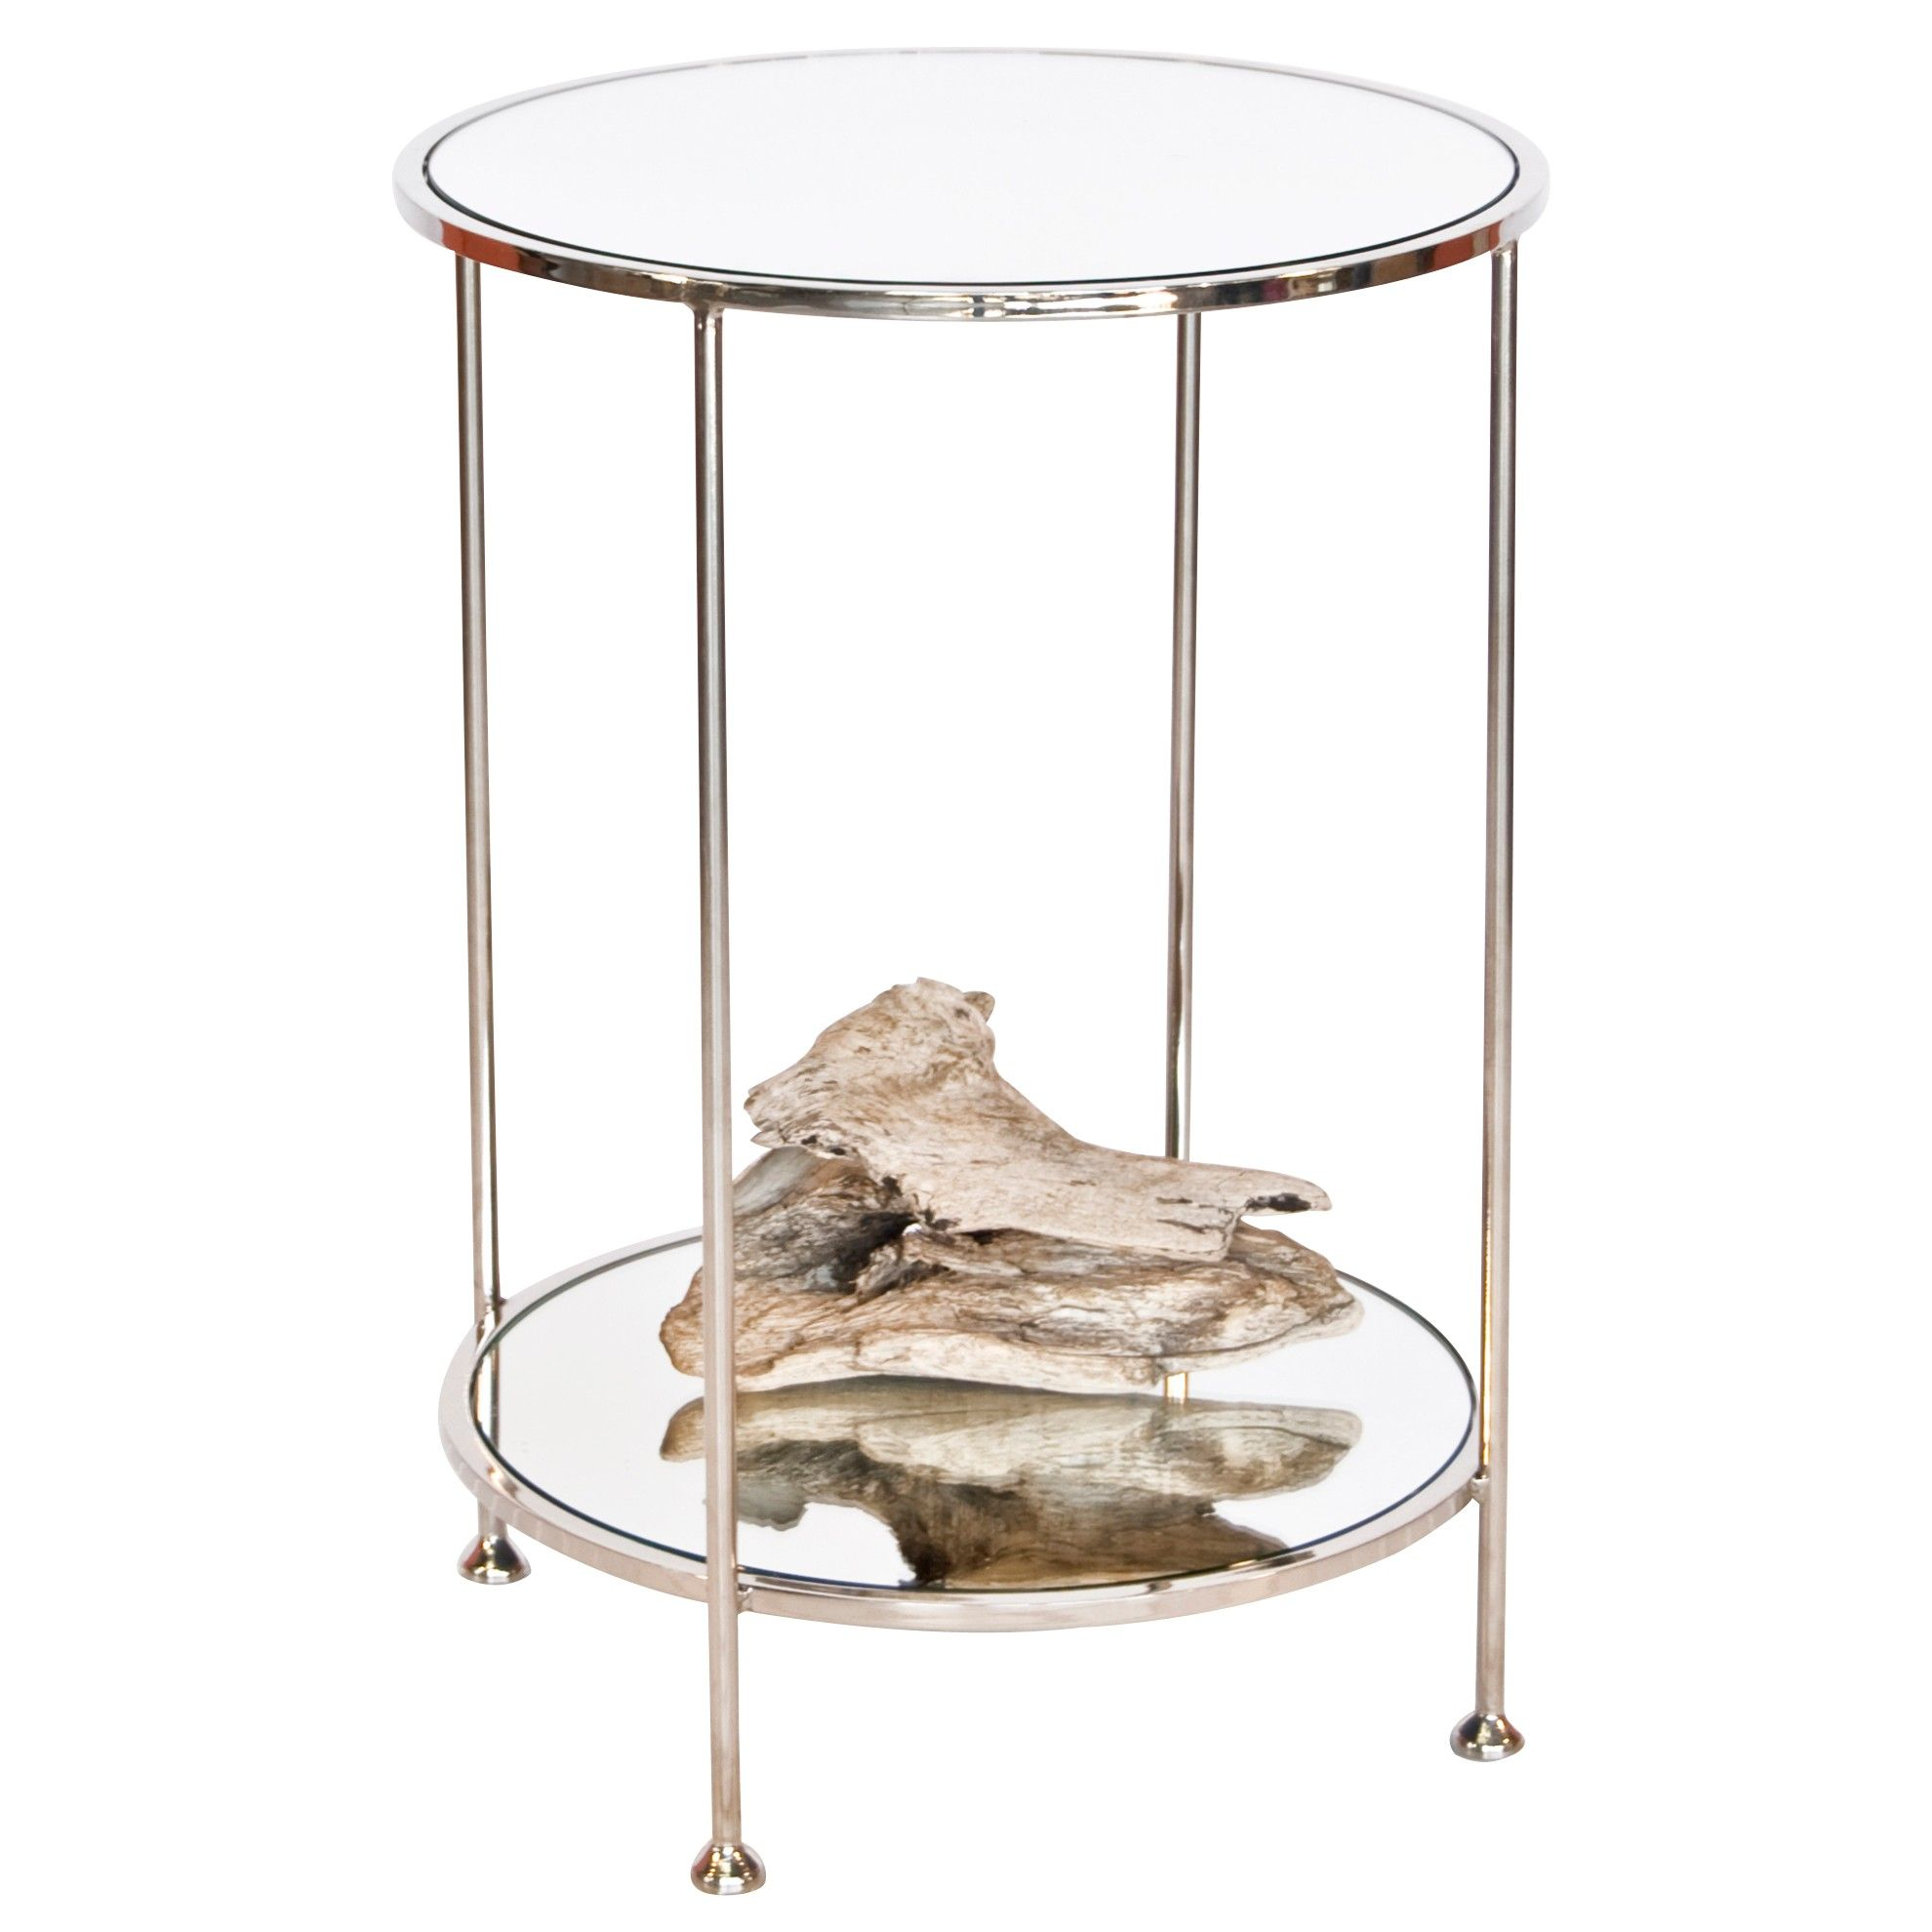 Chico Small 2 Tier Nickel Plate Side Table With Mirror Top By Worlds Away Side Table Mirrored Side Tables Mirror Tops